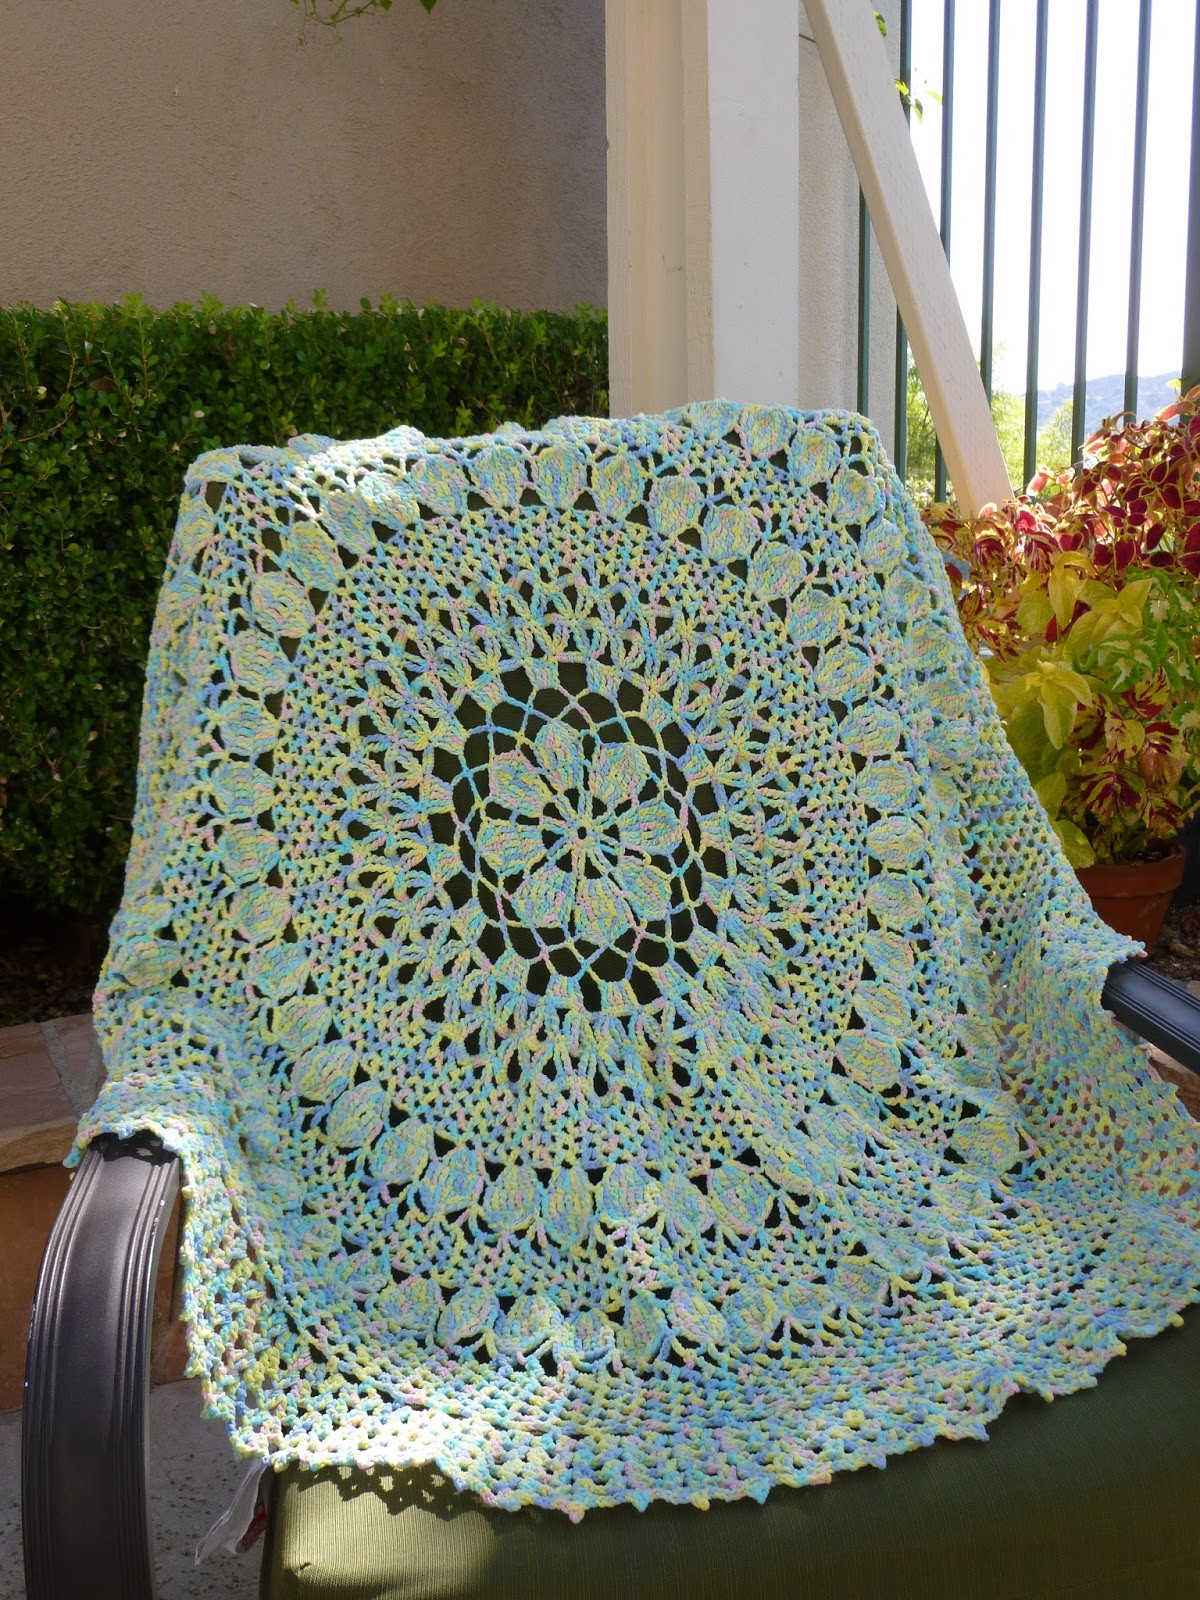 Inspirational Crochet Patterns for Round Baby Blankets Dancox for Crochet Round Baby Blanket Of Luxury 42 Ideas Crochet Round Baby Blanket